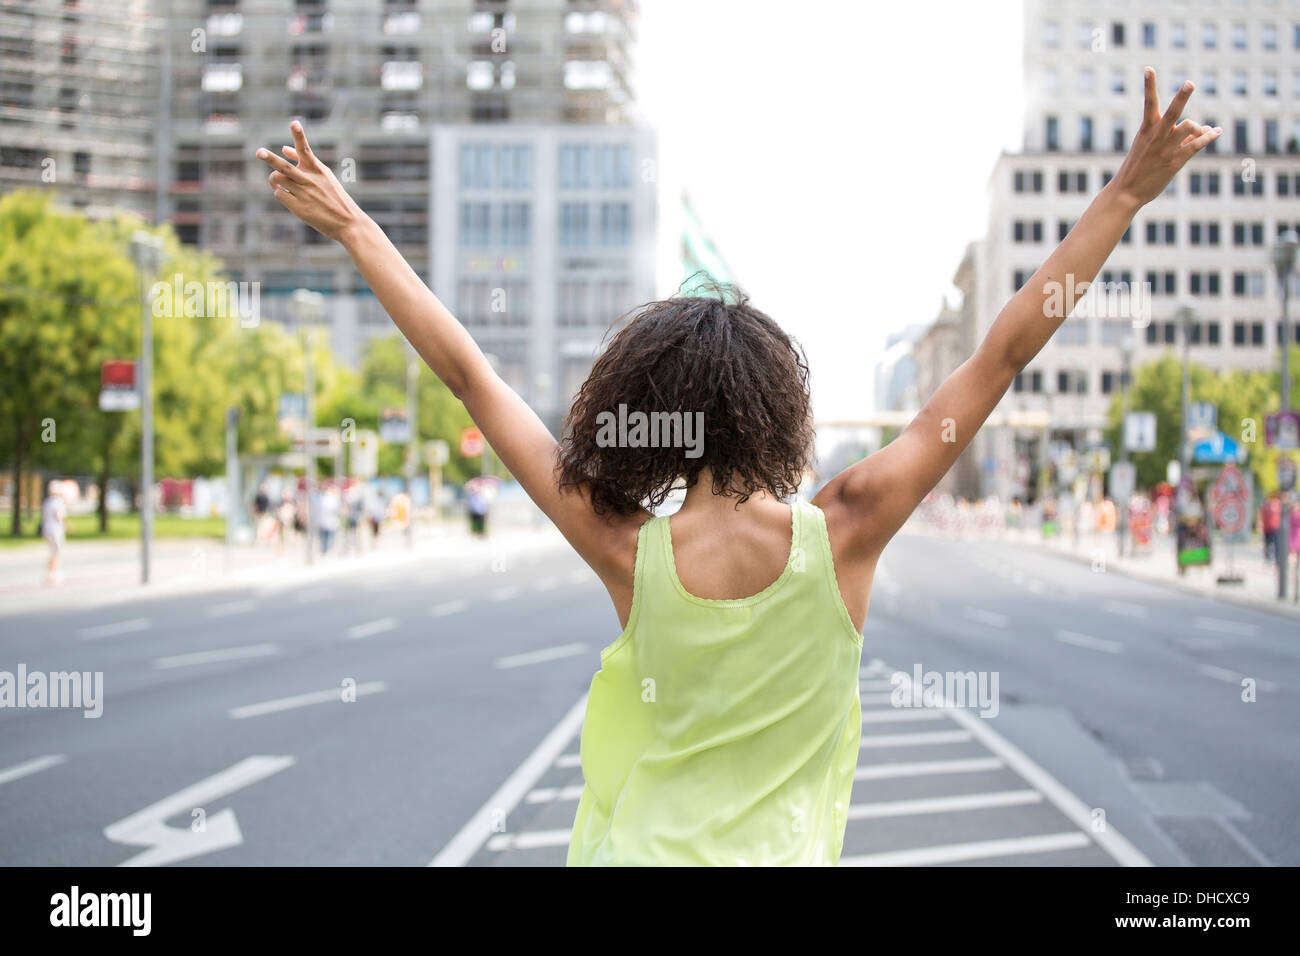 Germany, Berlin, Young women in the city, making victory sign, rear view - Stock Image